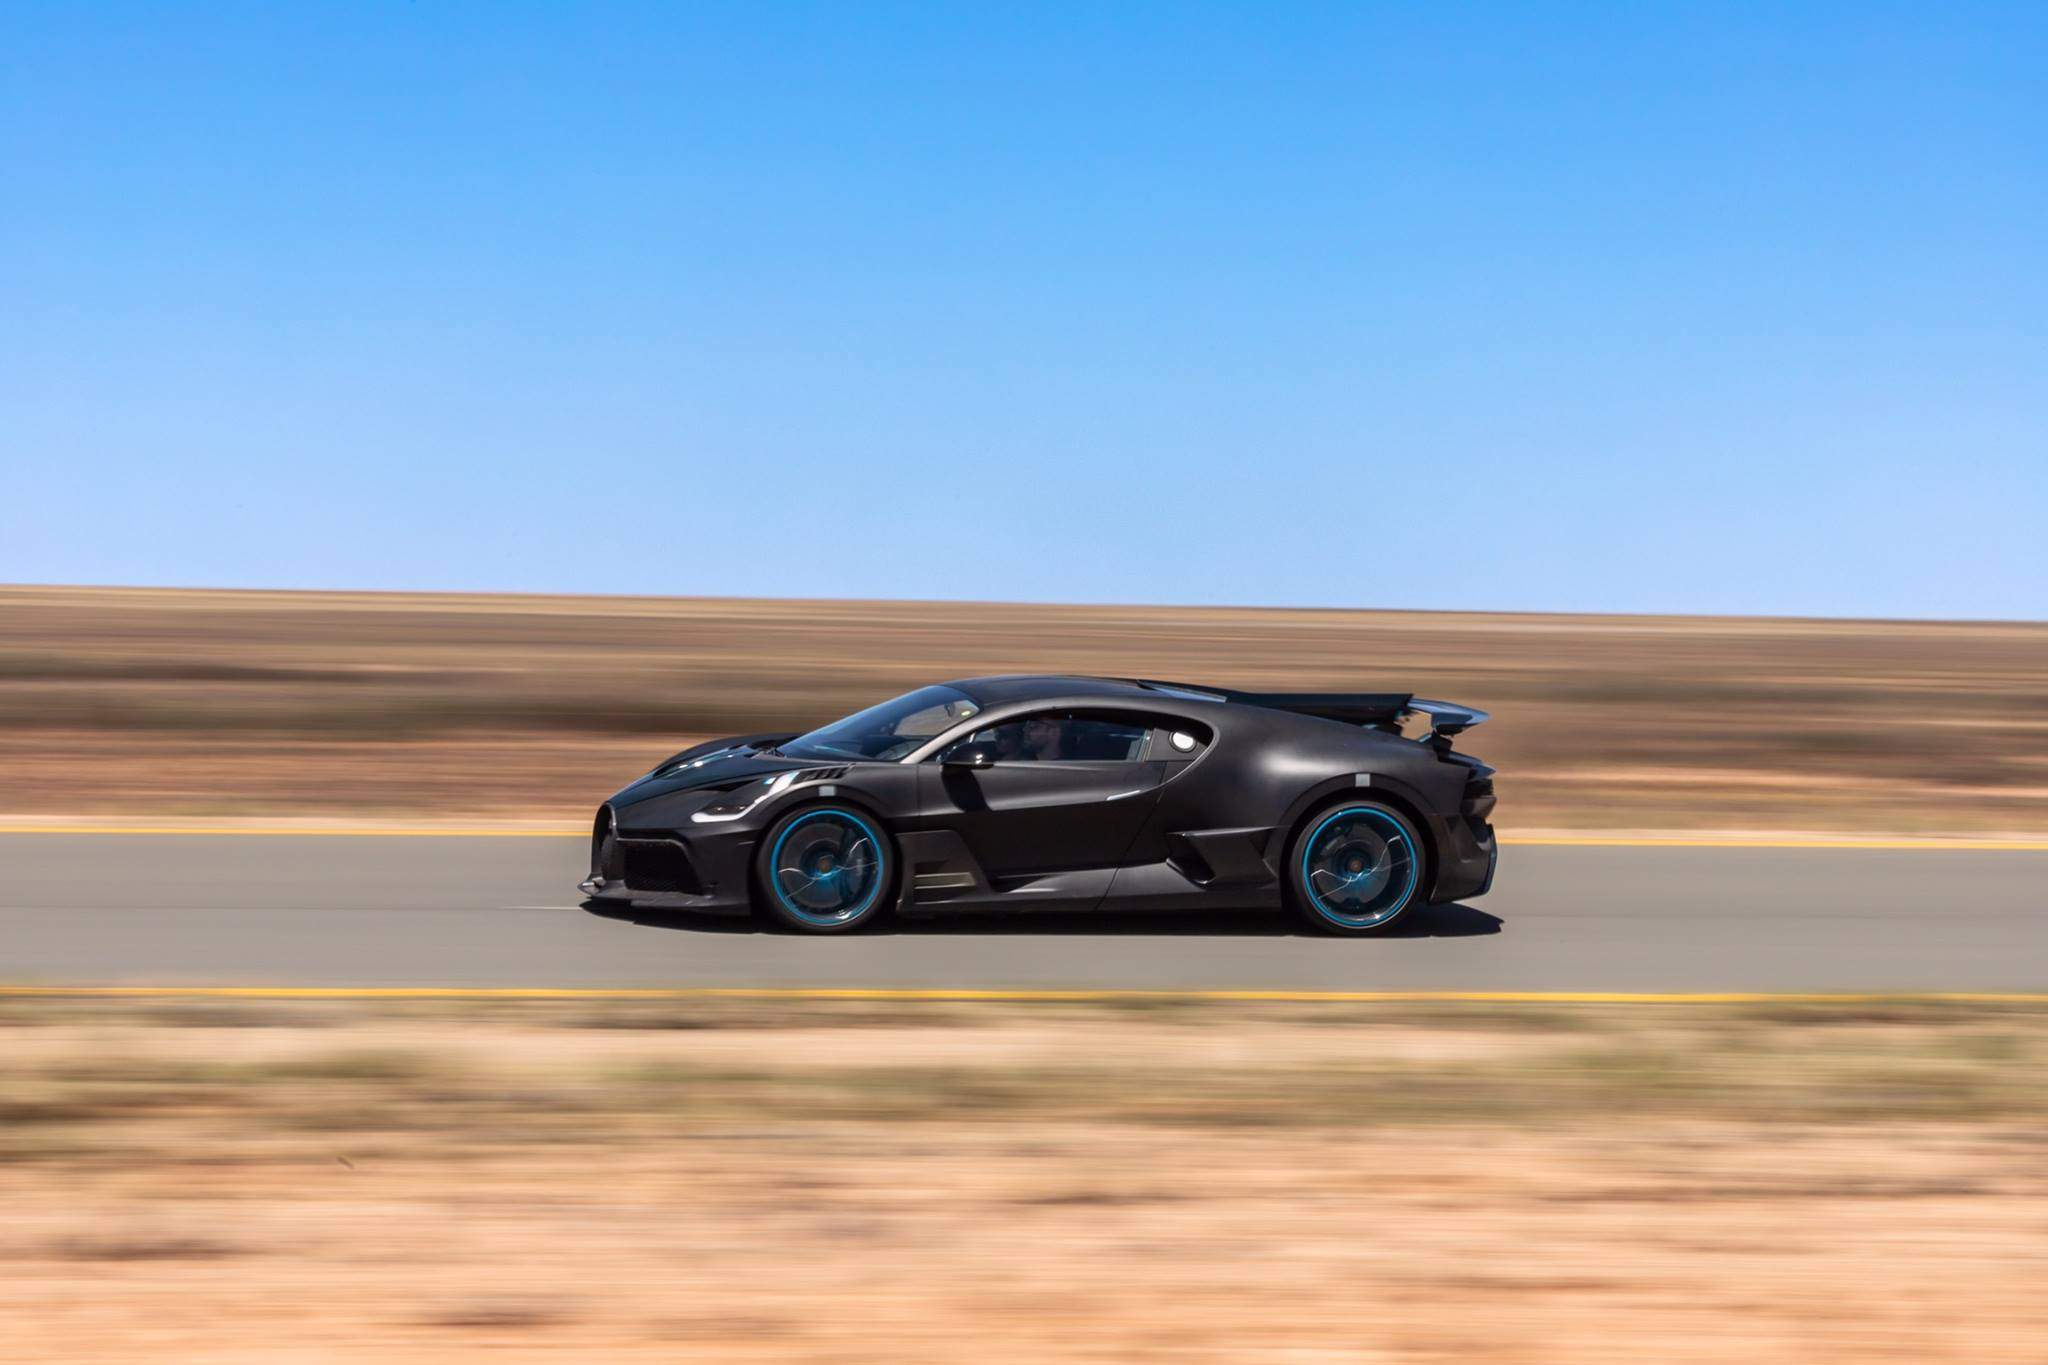 Bugatti has posted photos of its new Divo hypercar on its social network pages